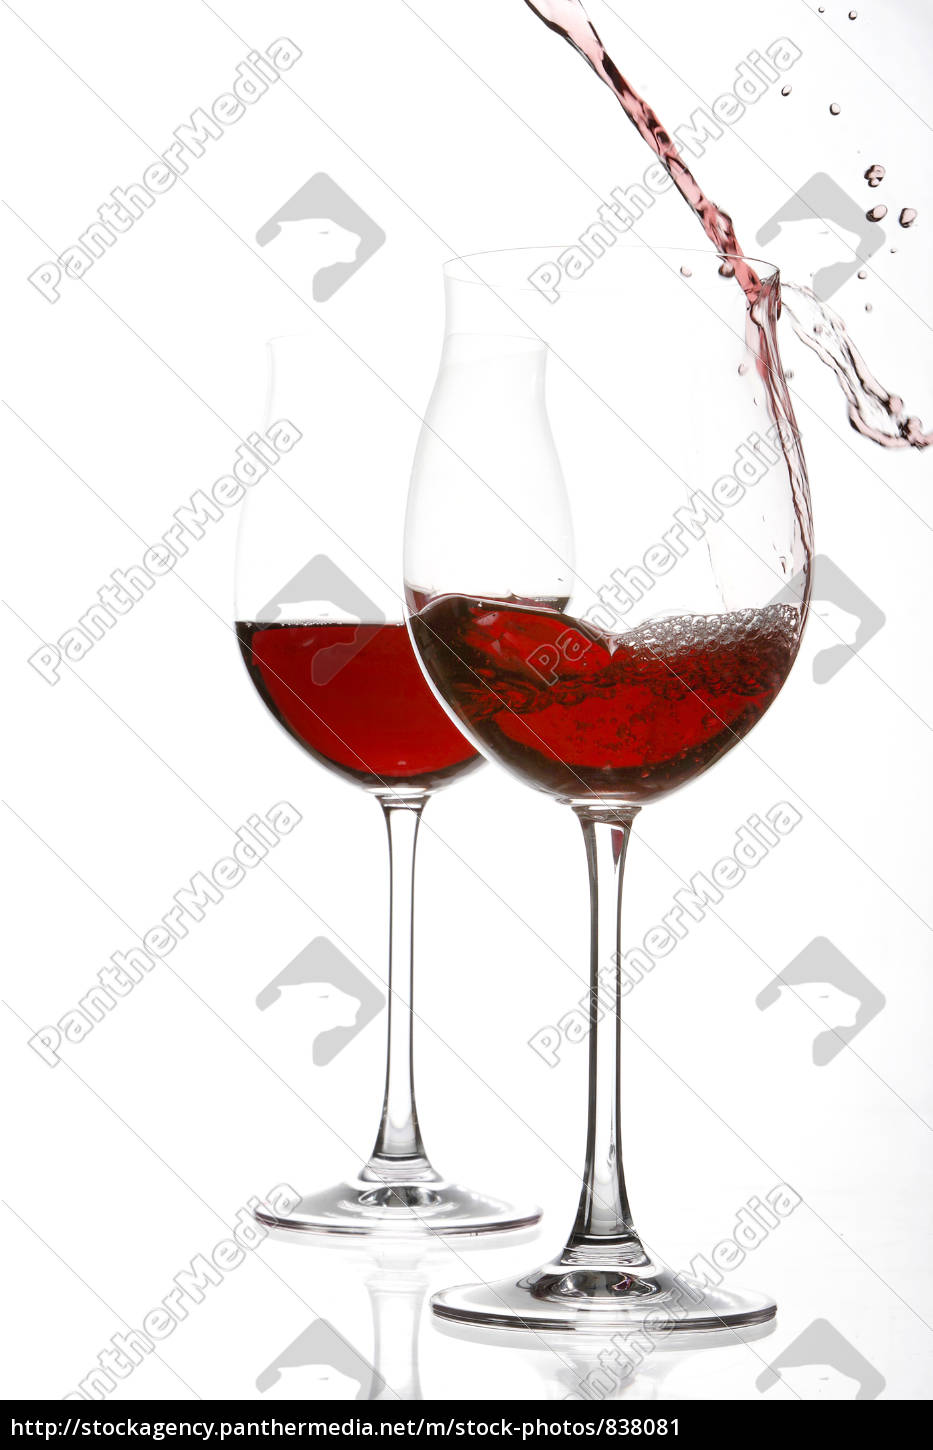 red, wine - 838081